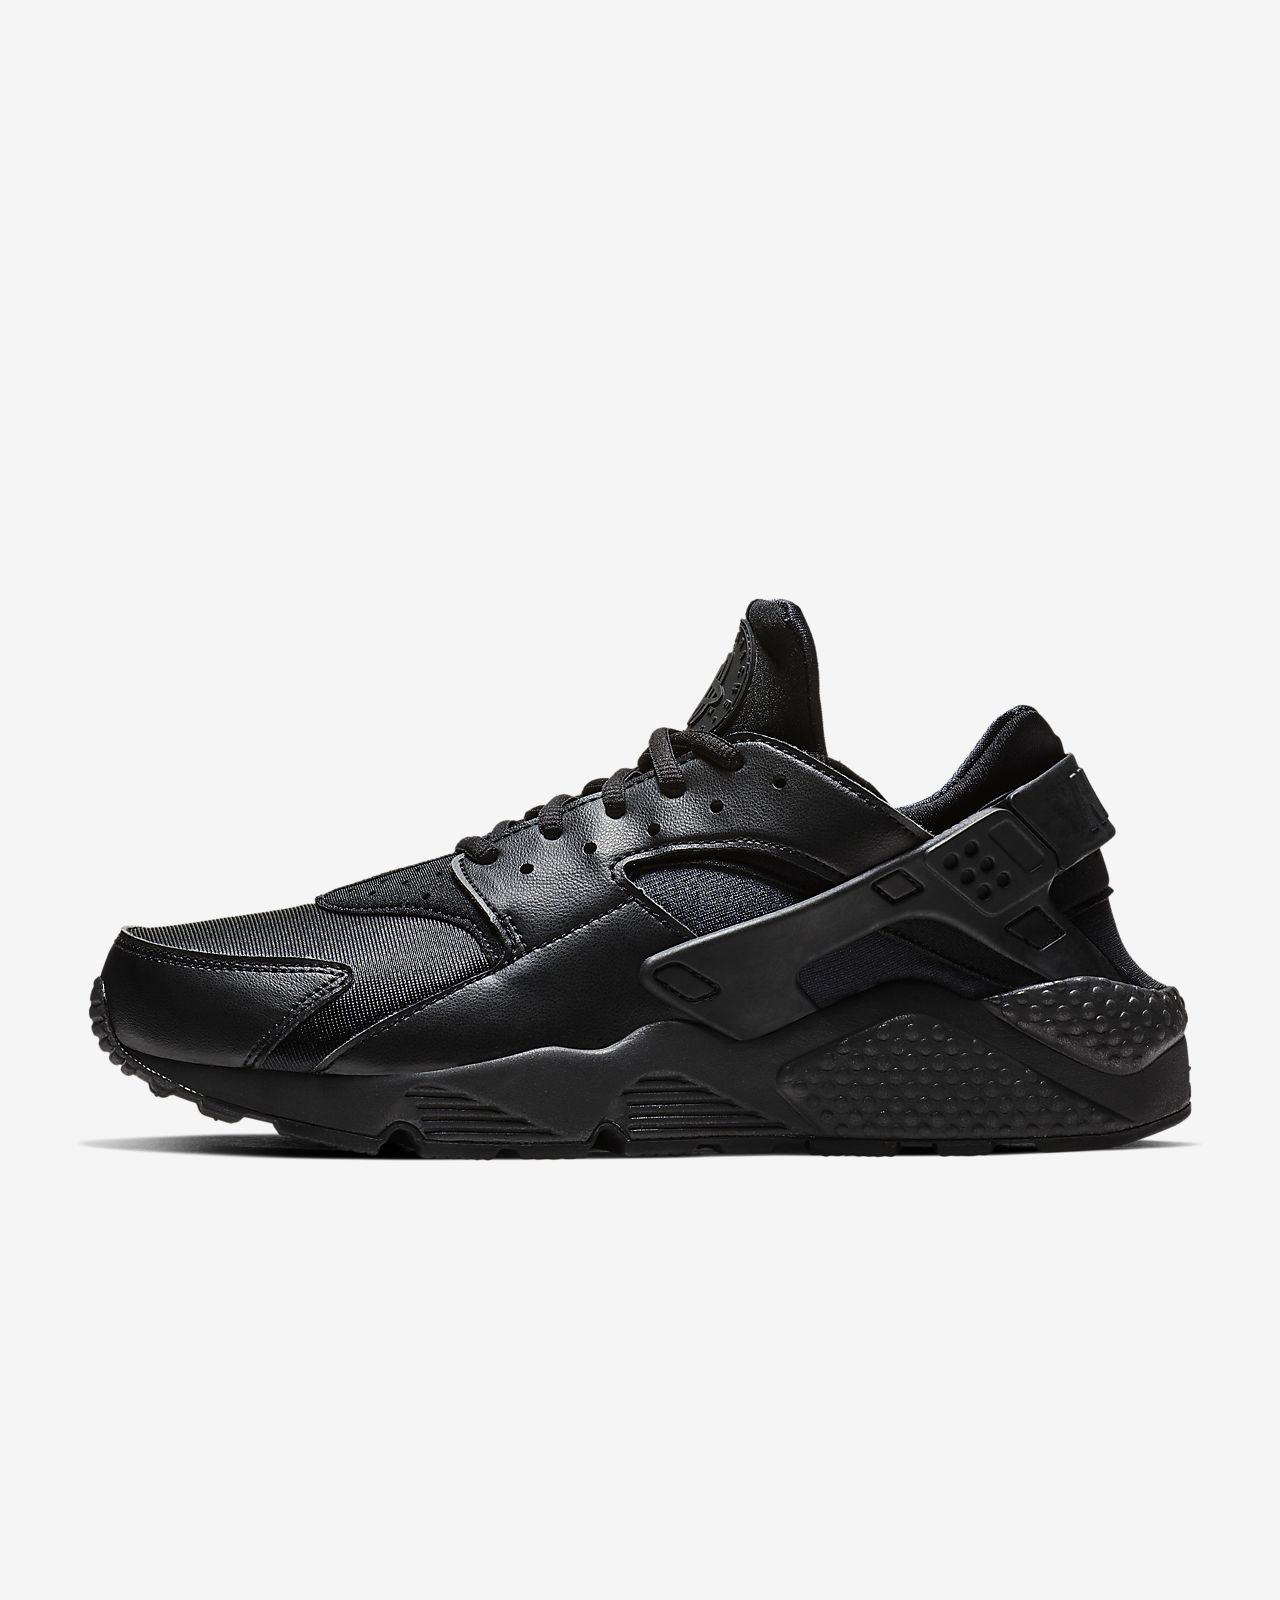 9db995a08e97 Nike Air Huarache Women s Shoe. Nike.com